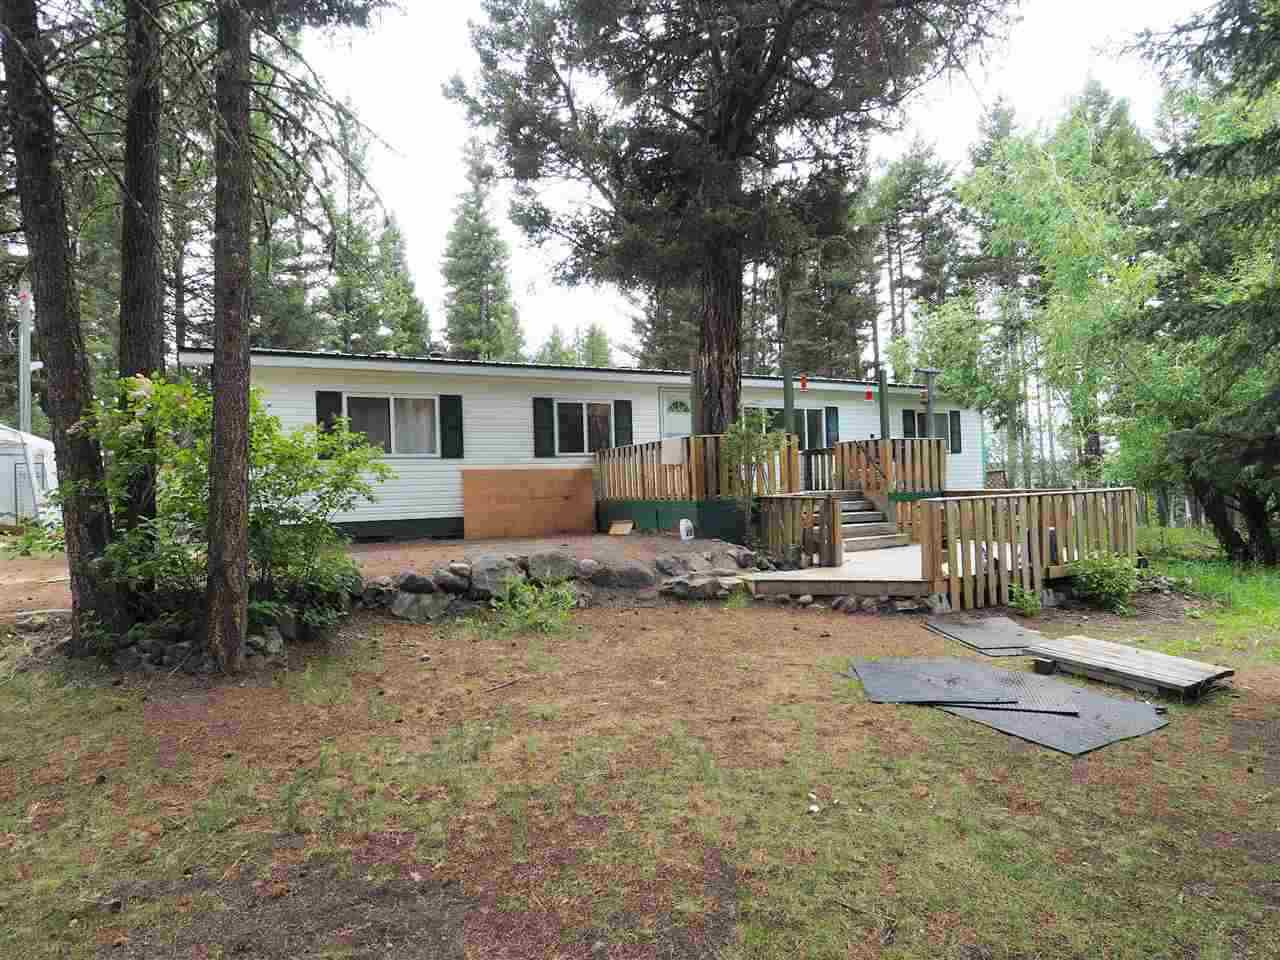 Photo 2: Photos: 4836 GLOINNZUN Drive in 108 Mile Ranch: 108 Ranch Manufactured Home for sale (100 Mile House (Zone 10))  : MLS®# R2435093